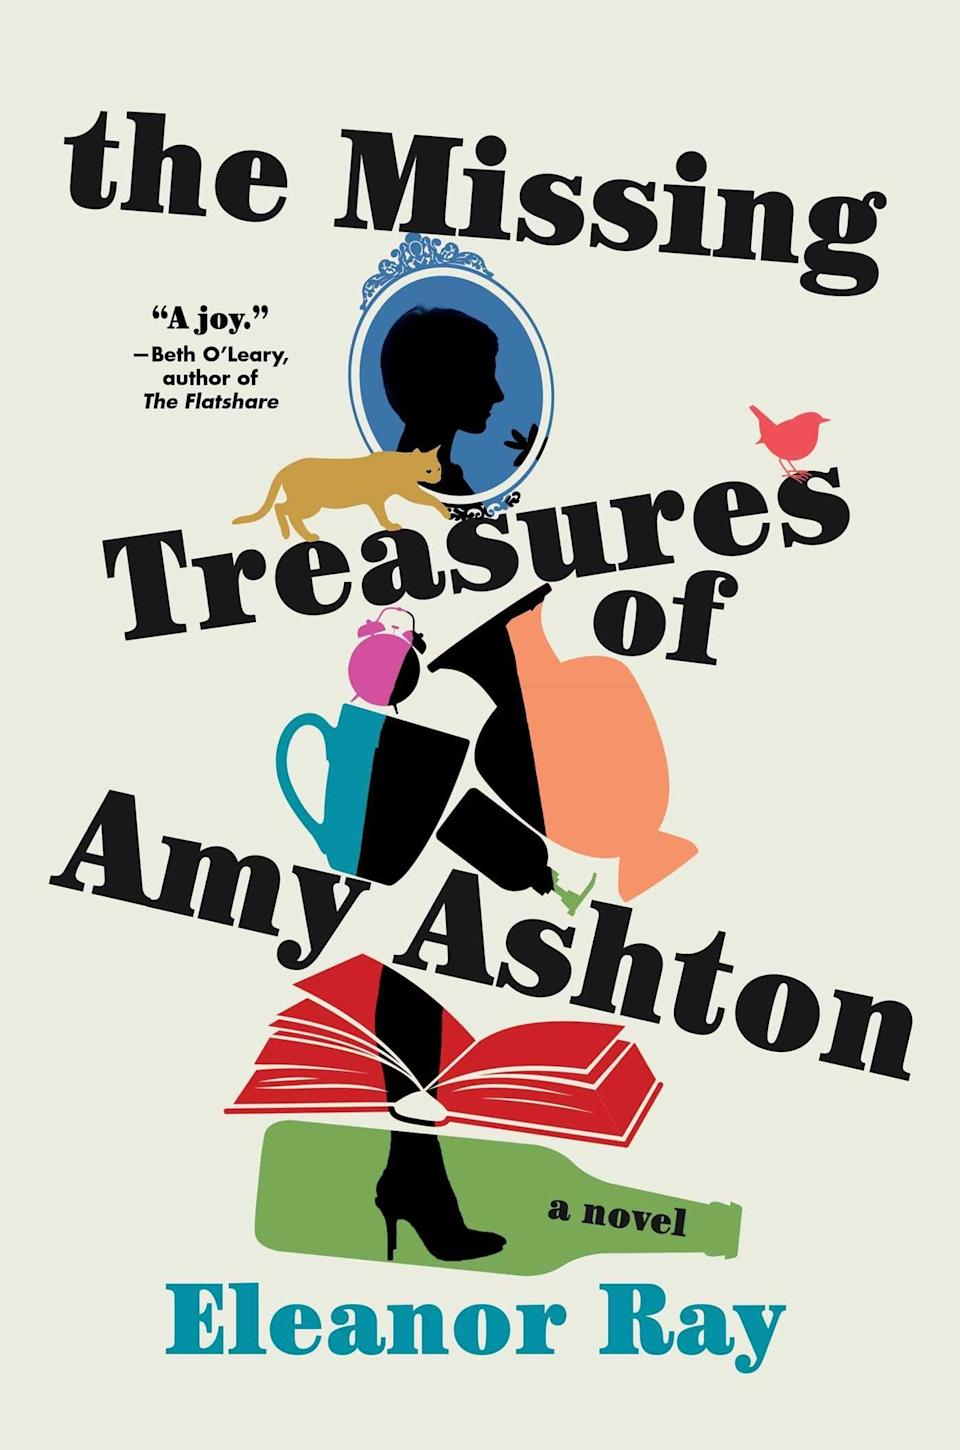 <p><span><strong>The Missing Treasures of Amy Ashton</strong></span> by Eleanor Ray is a bighearted novel about starting over after a tragedy. A heartbreaking event in her past left Amy more inclined to collect objects than to allow herself to open up to people. But when a little boy with his own passion for collecting moves in next door, Amy might finally find a way to open up her heart again. </p> <p><em>Out June 8</em></p>